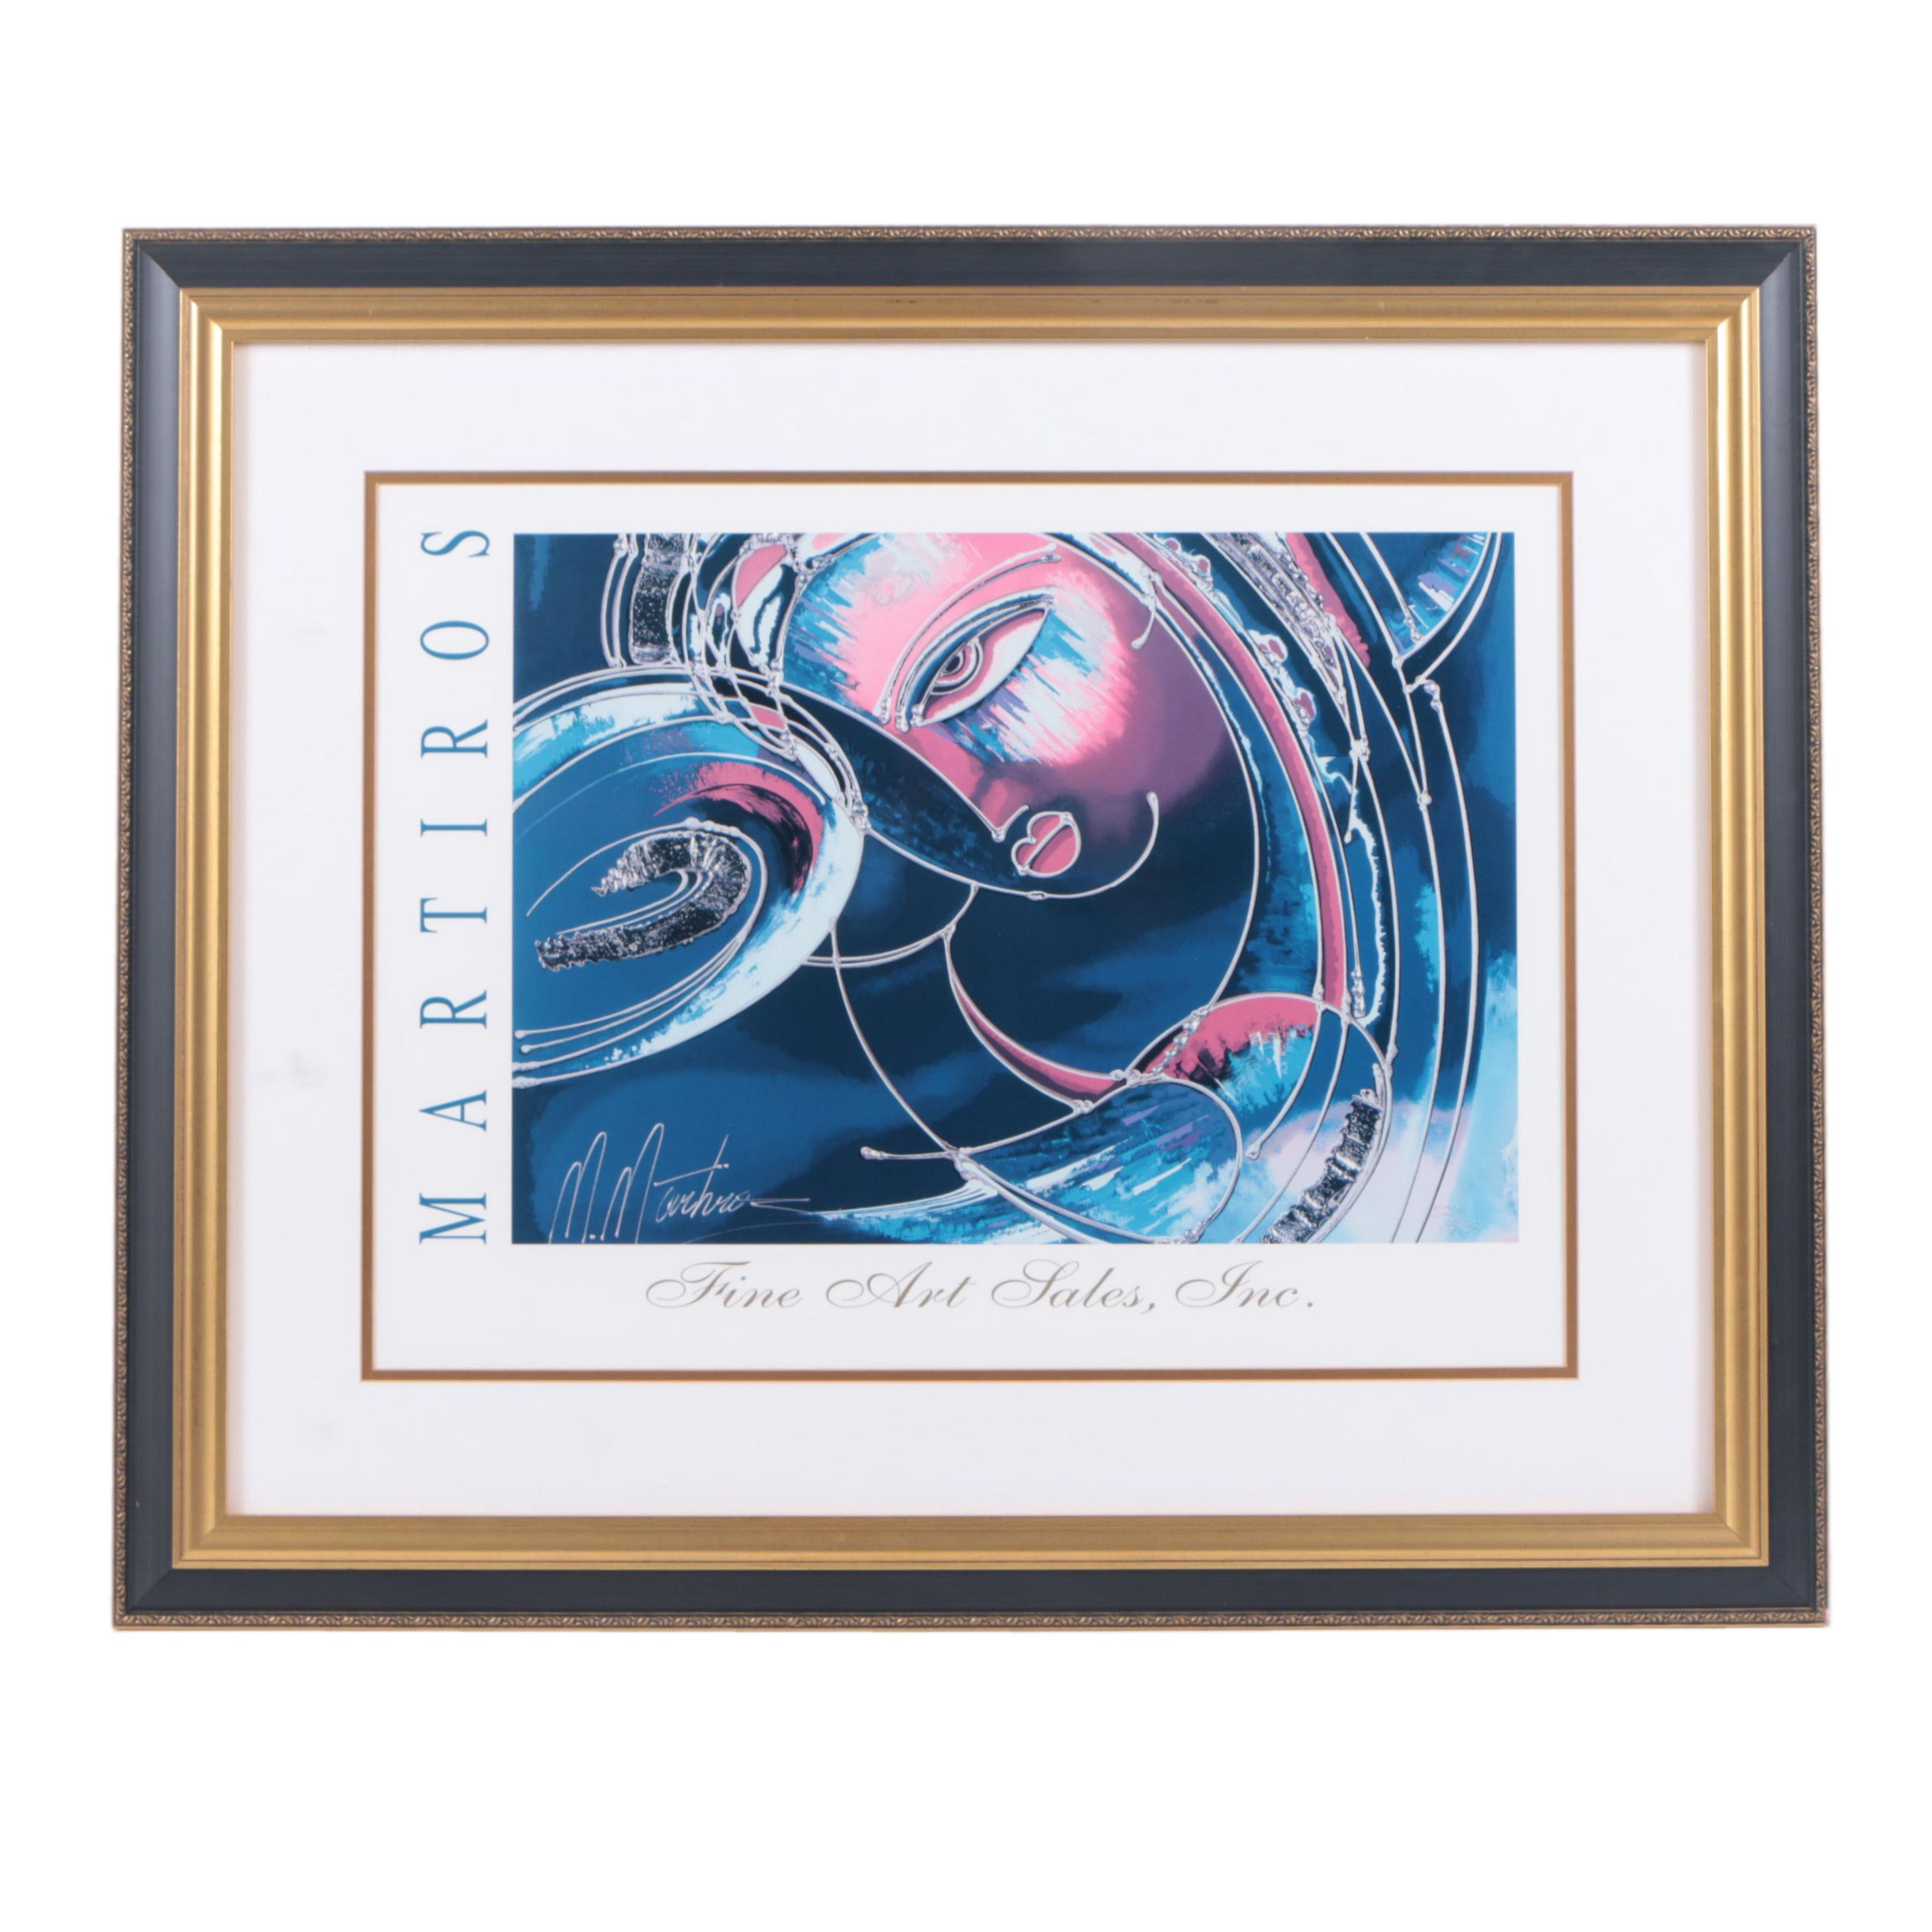 After Martiros Offset Lithograph Print from Fine Art Sales, Inc.